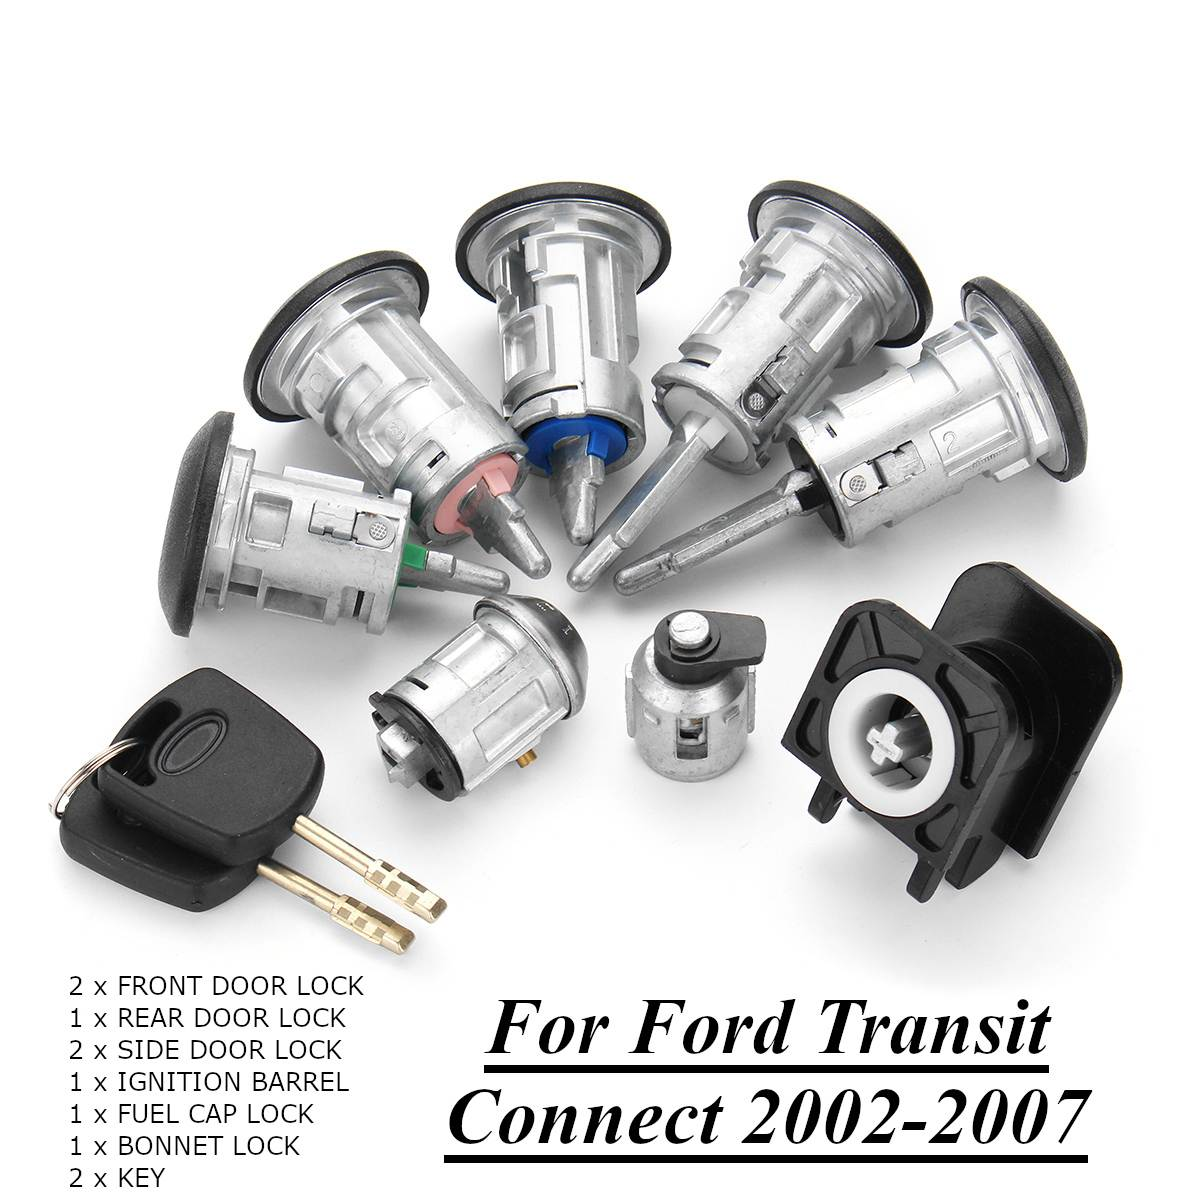 8pcs Ignition Switch Front Rear Door Lock Bonnet Set With 2 Keys Ford Pigtail Wiring For Transit Connect 2002 2007 4425134 In Locks Hardware From Automobiles